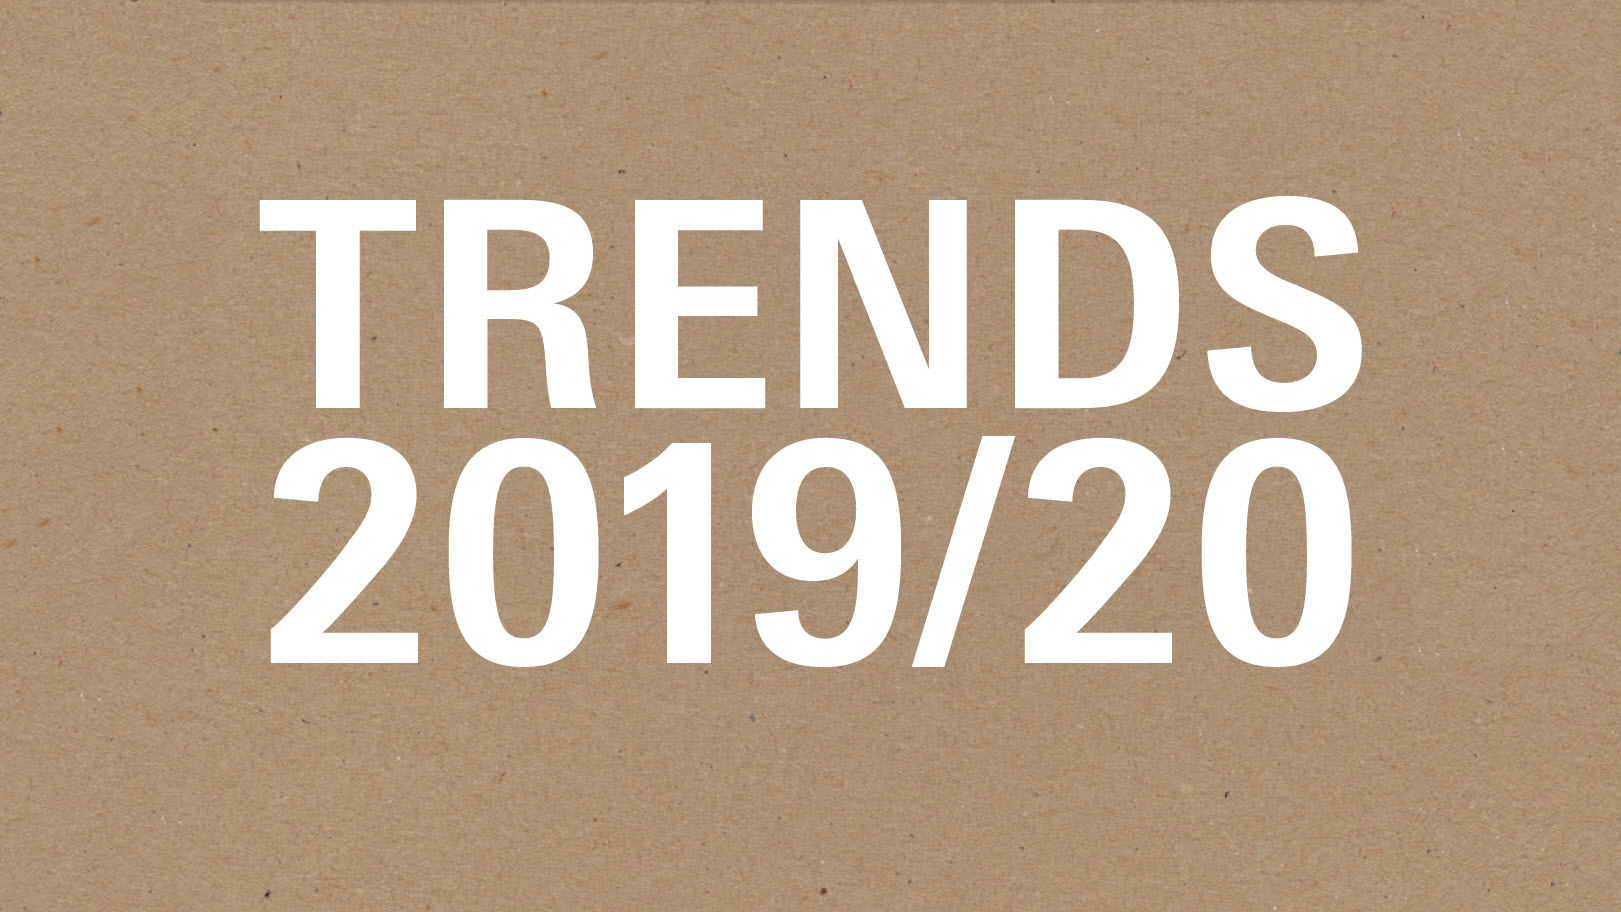 Paperworld Trends 2019/20 cover